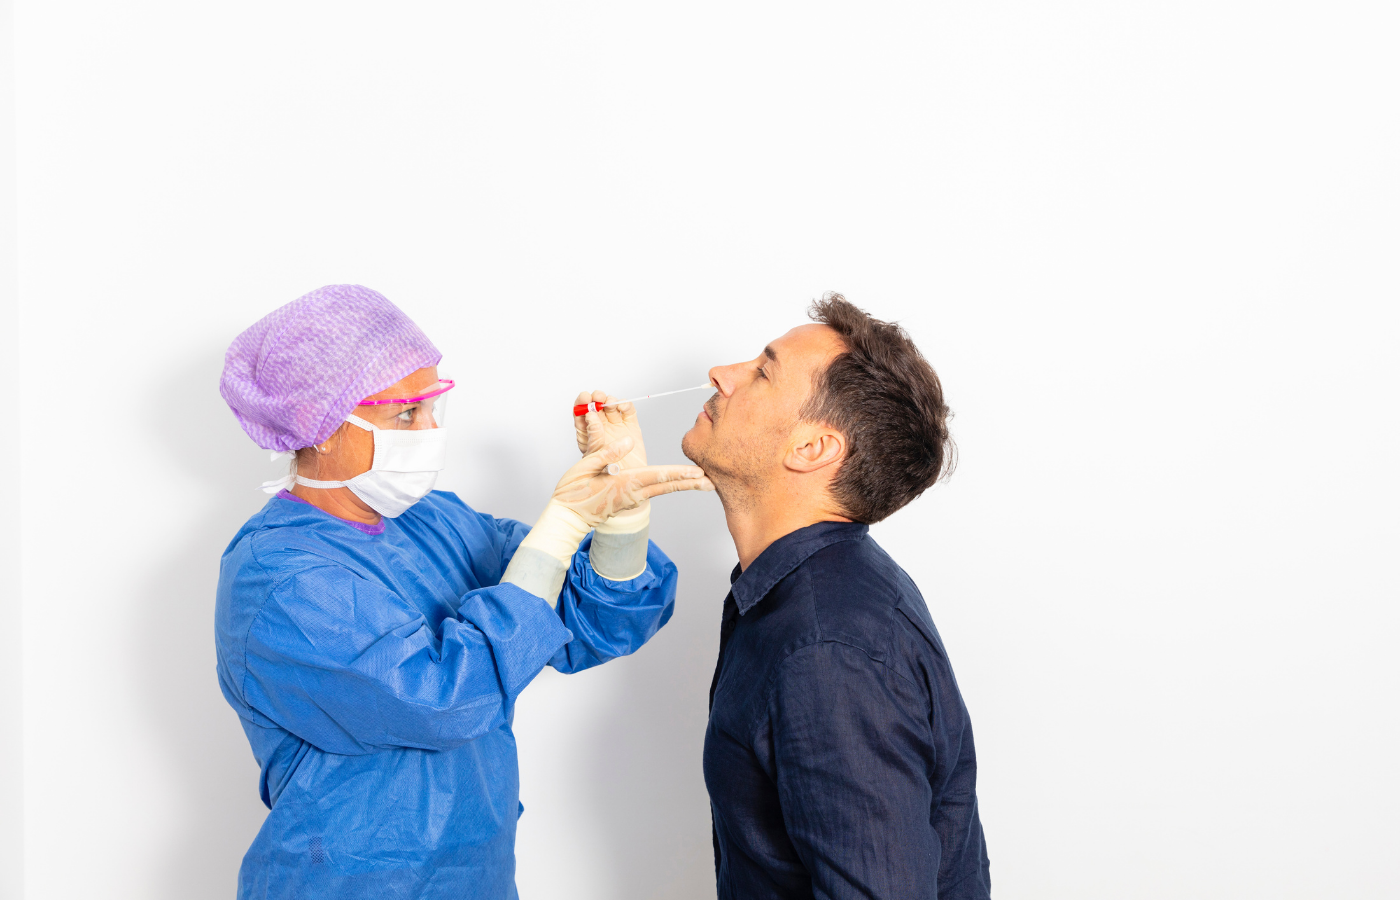 man having nasal sample taken by healthcare worker in protective equipment